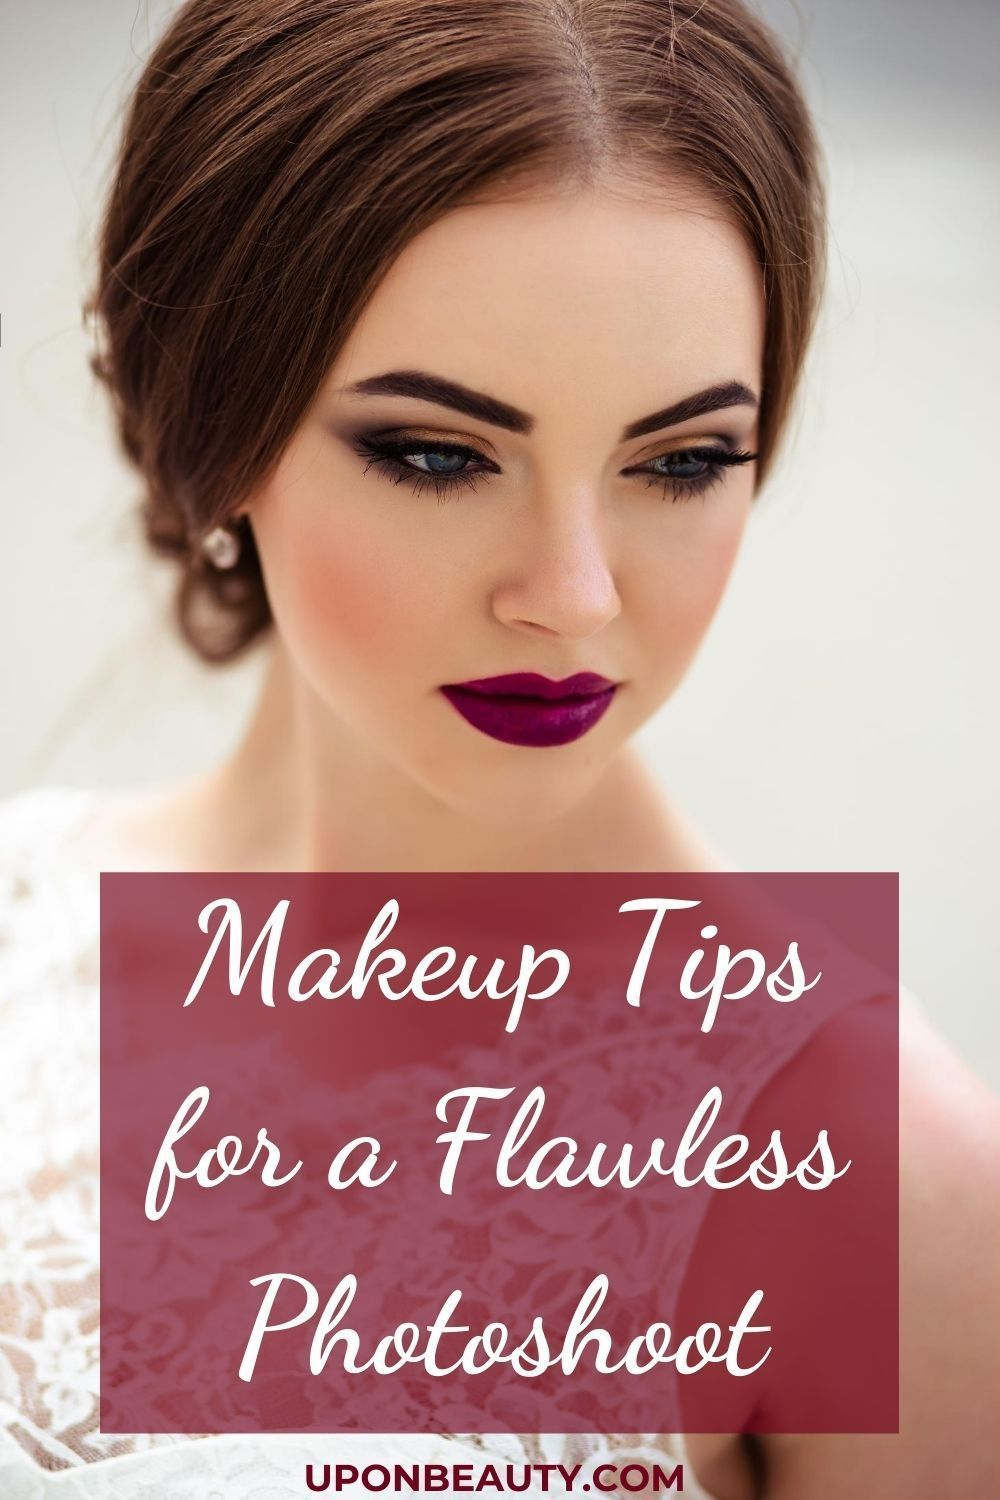 Makeup tips for a flawless photo-shoot - Up On Beauty in 11